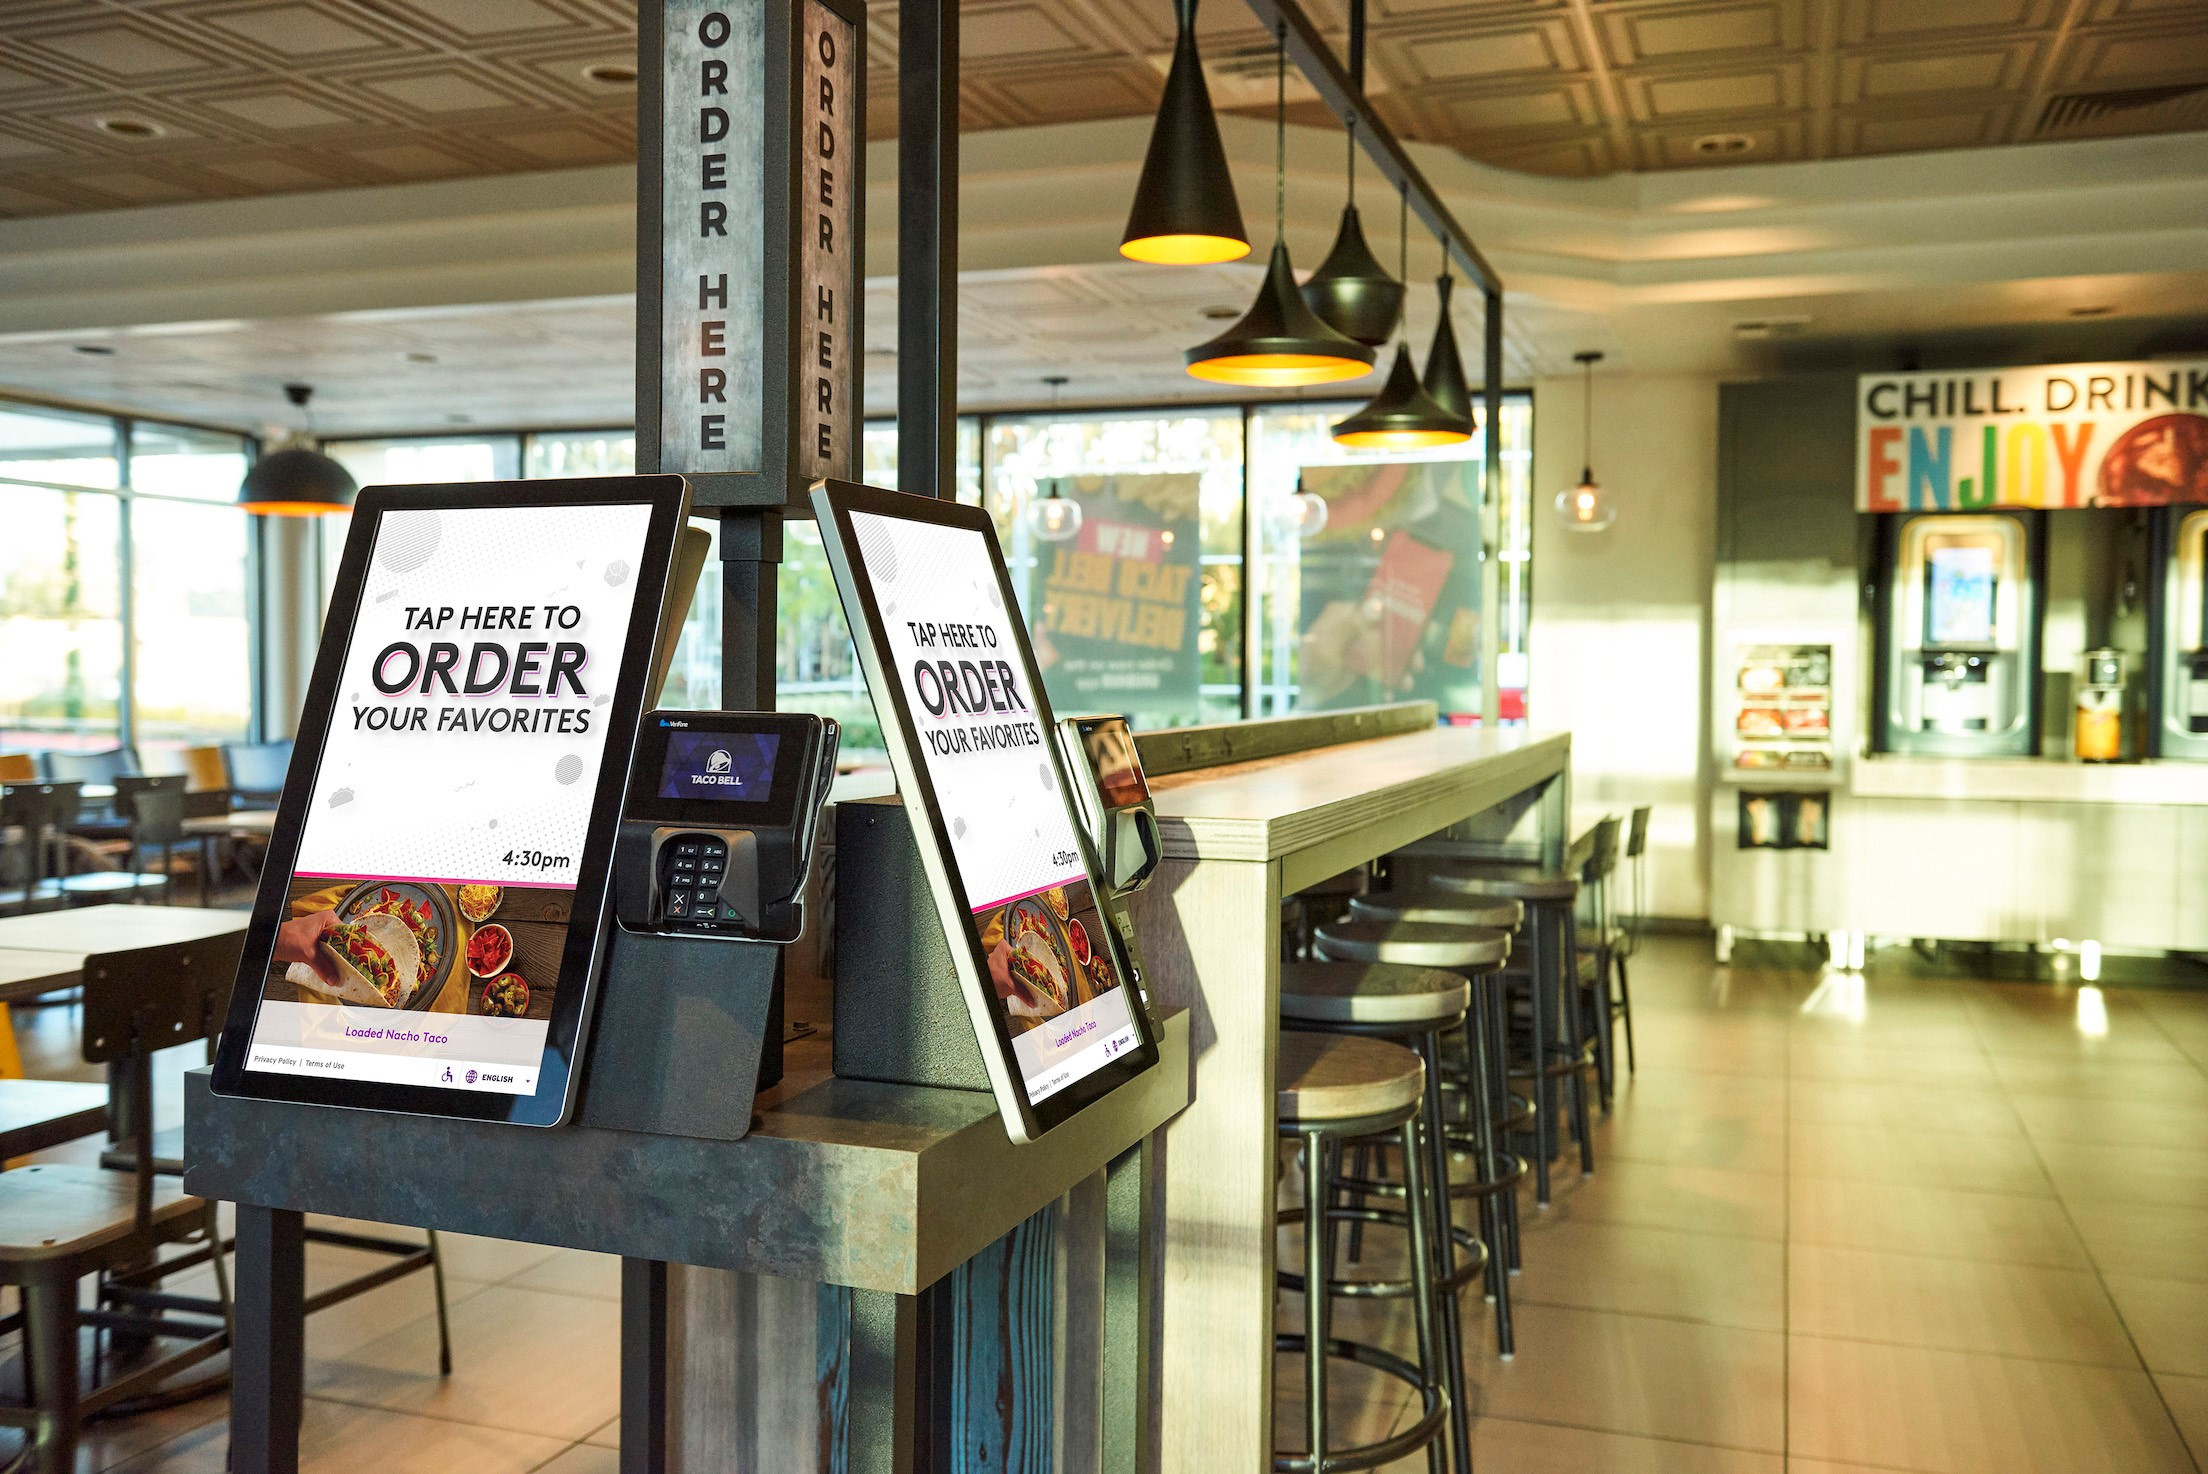 Taco Bell Bell Canada Smart City Kiosks Grab Elevate Awards Interactive Customer Experience Icx Summit Kiosk Marketplace